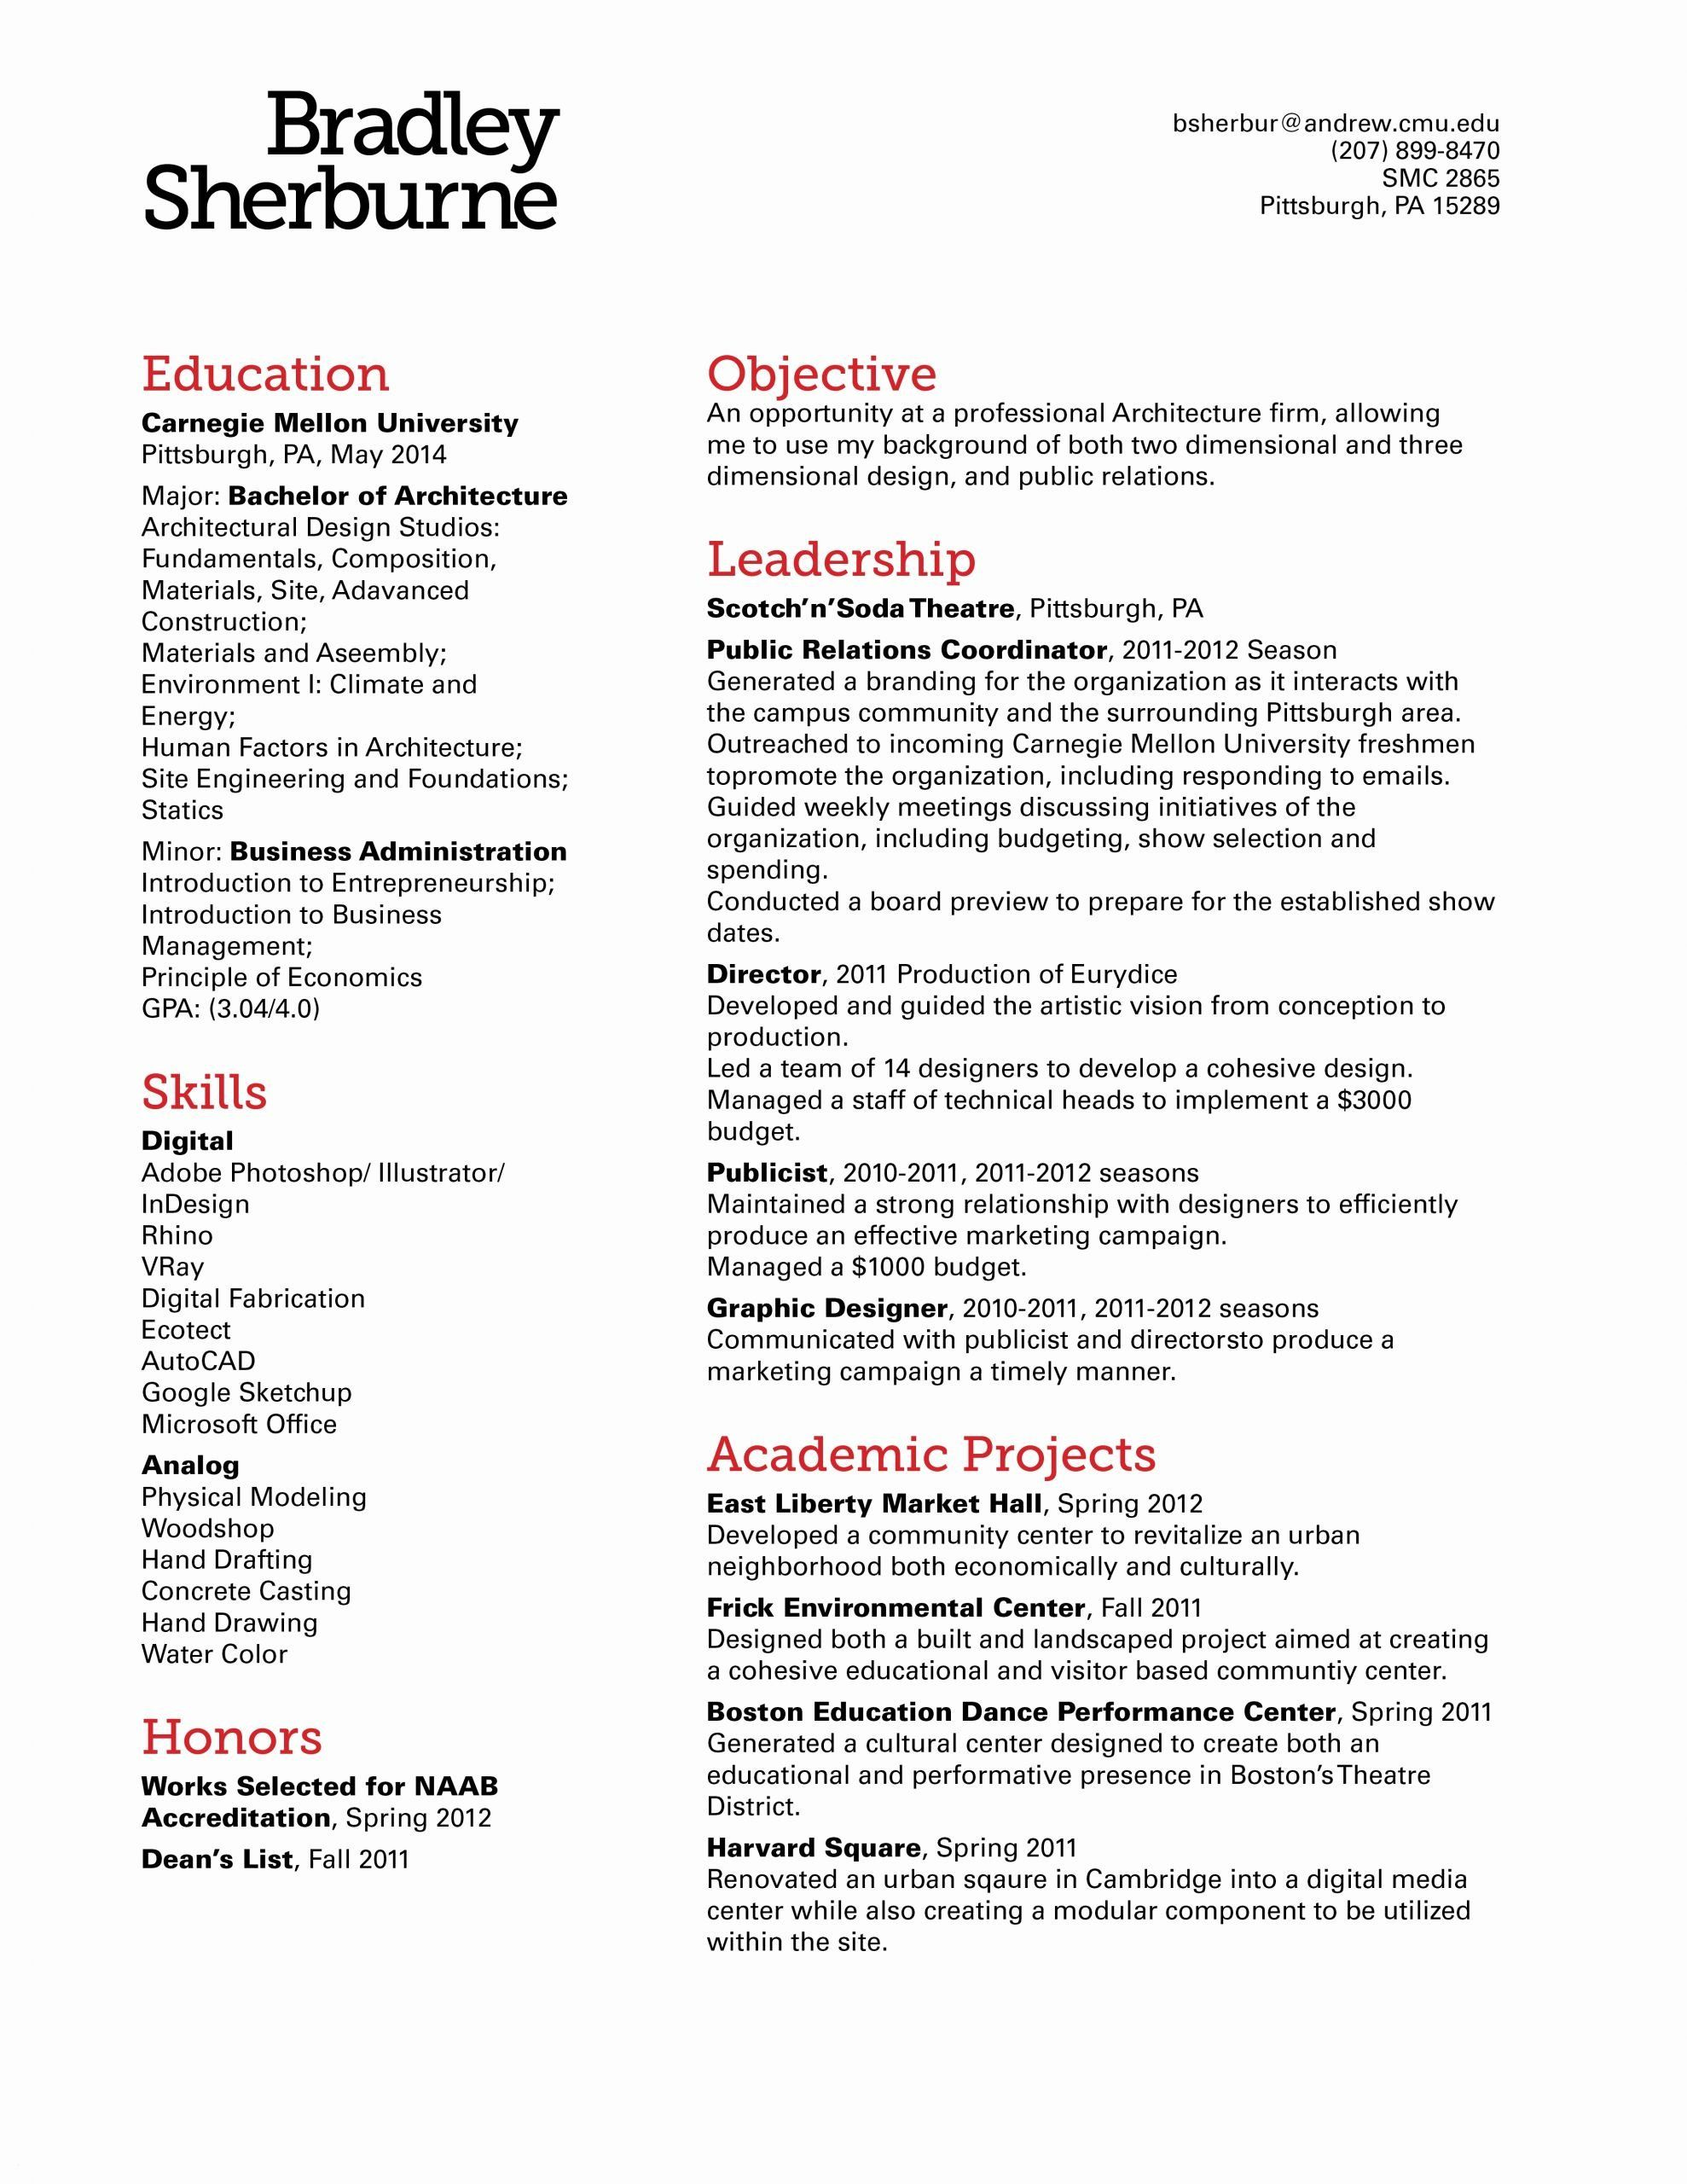 Two Column Resume Template Word Luxury 10 Double Column Resume Template Resume Template Word Resume Template Best Resume Template